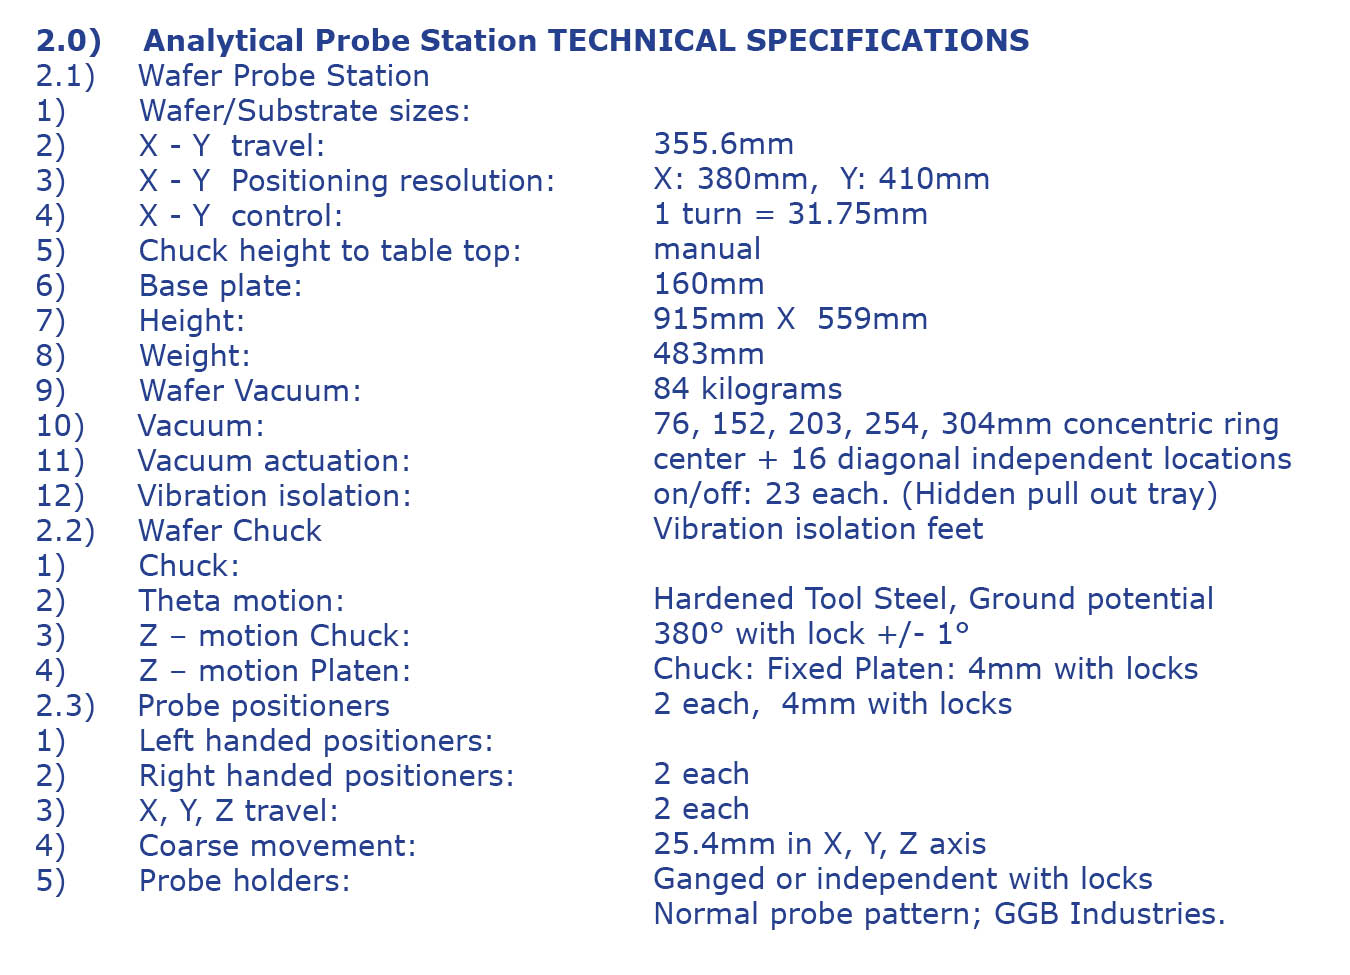 chart - analytical probe station technical specs